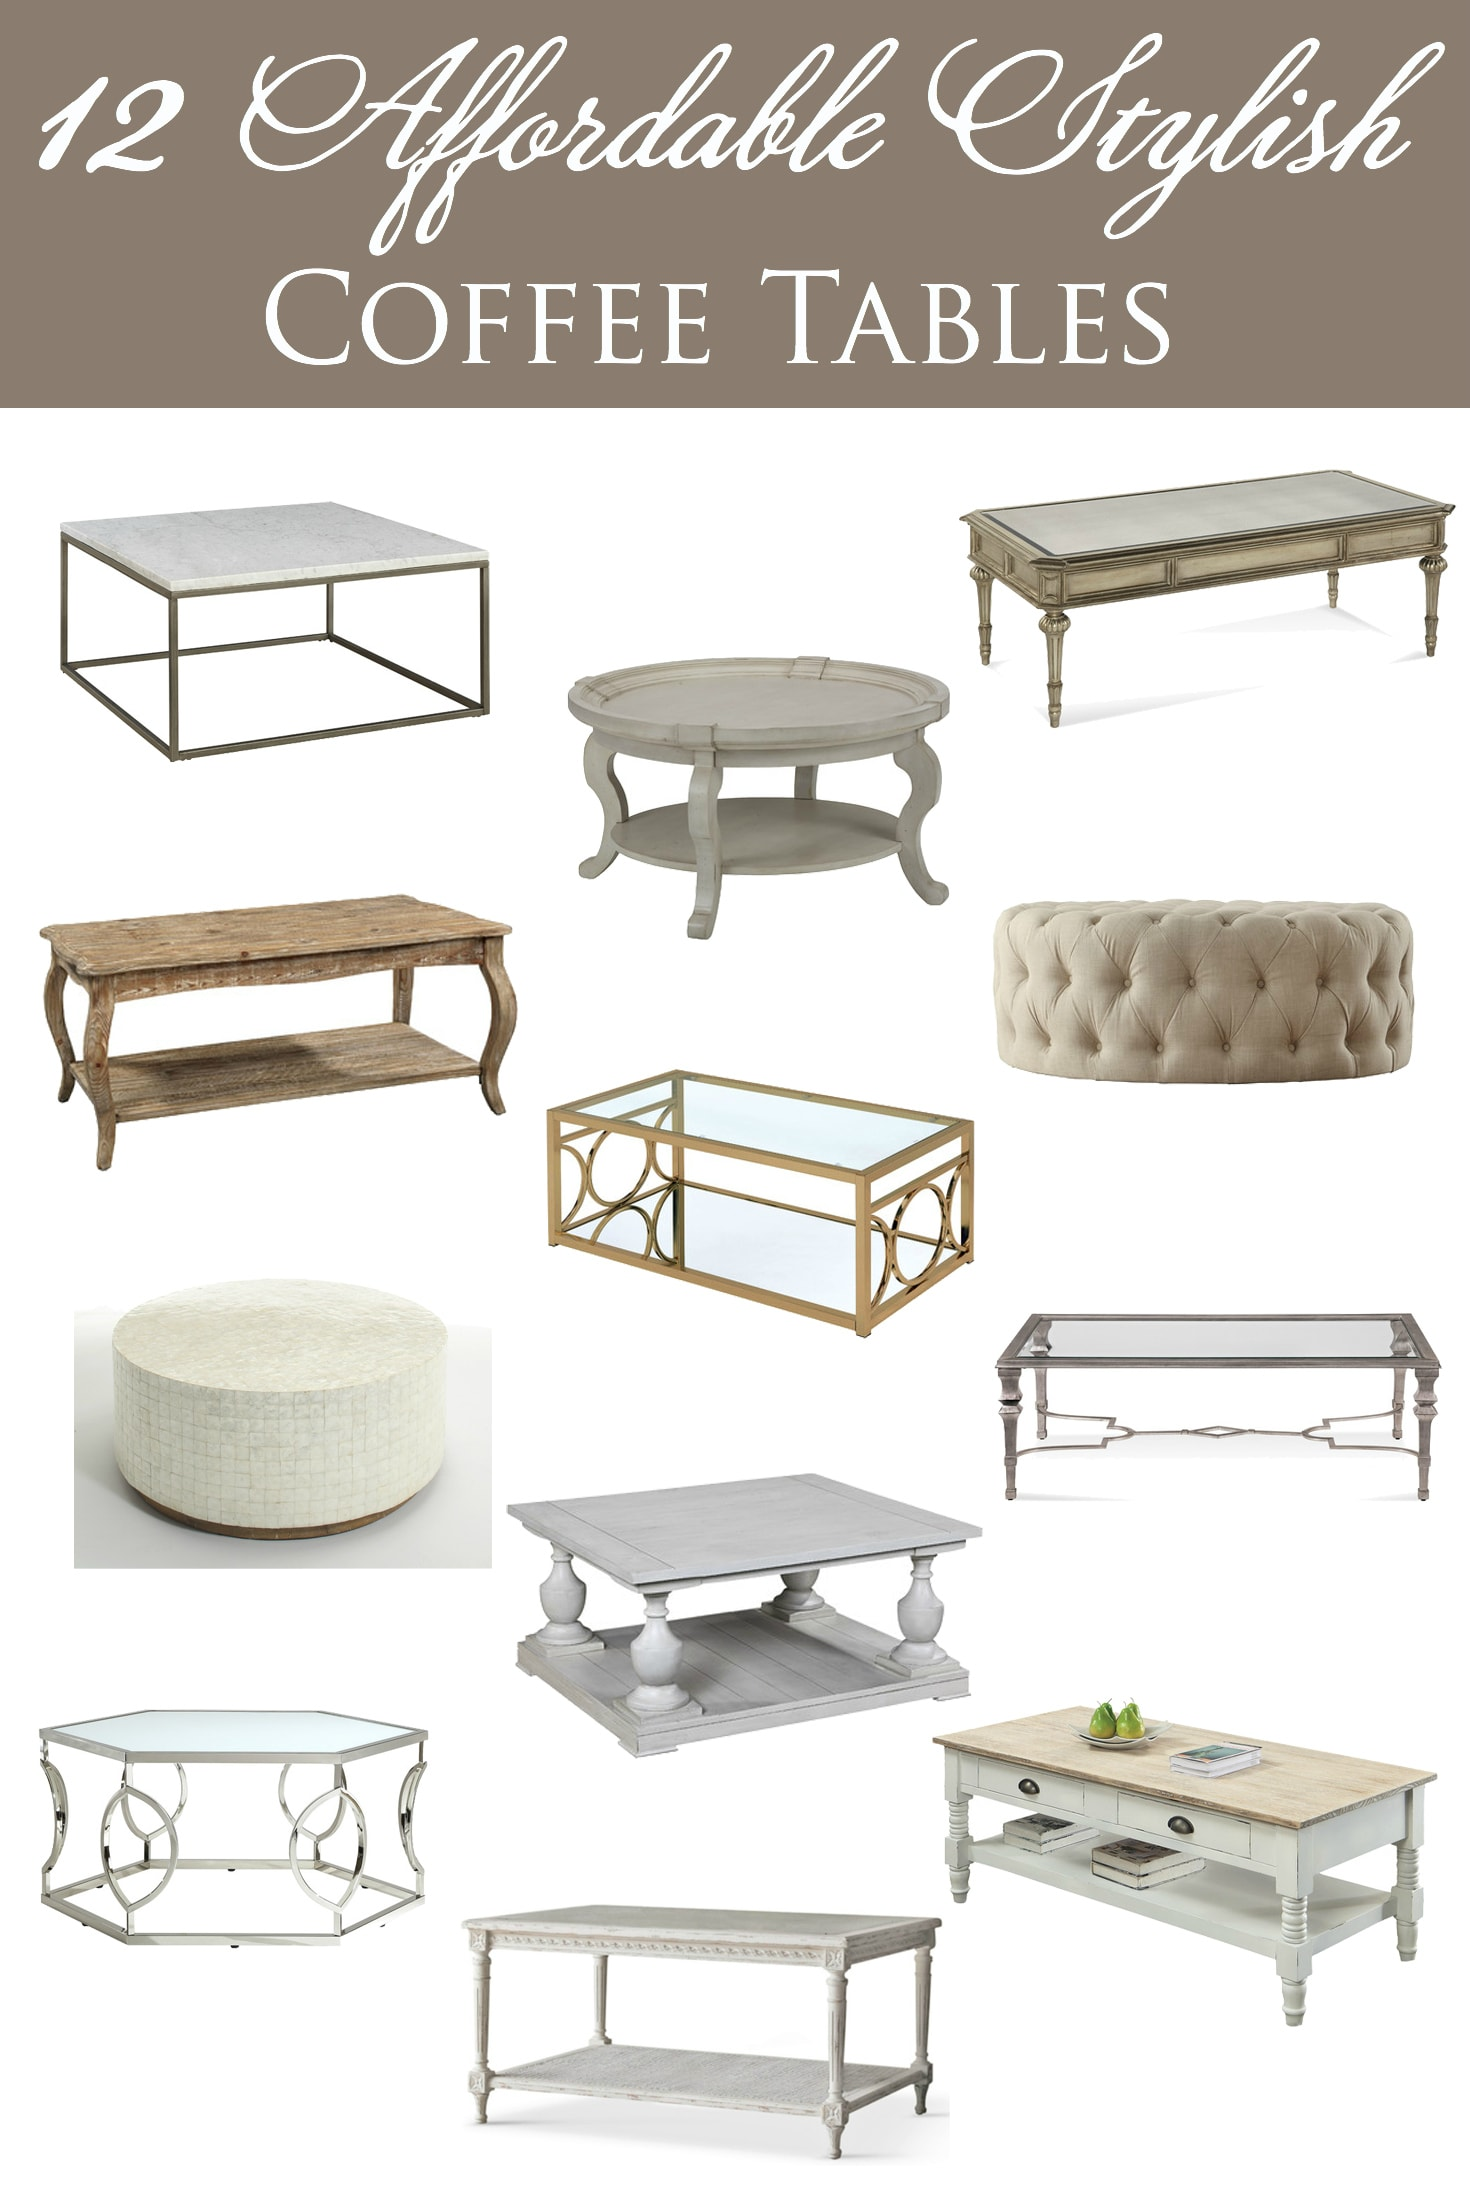 12 Affordable Stylish Coffee Tables